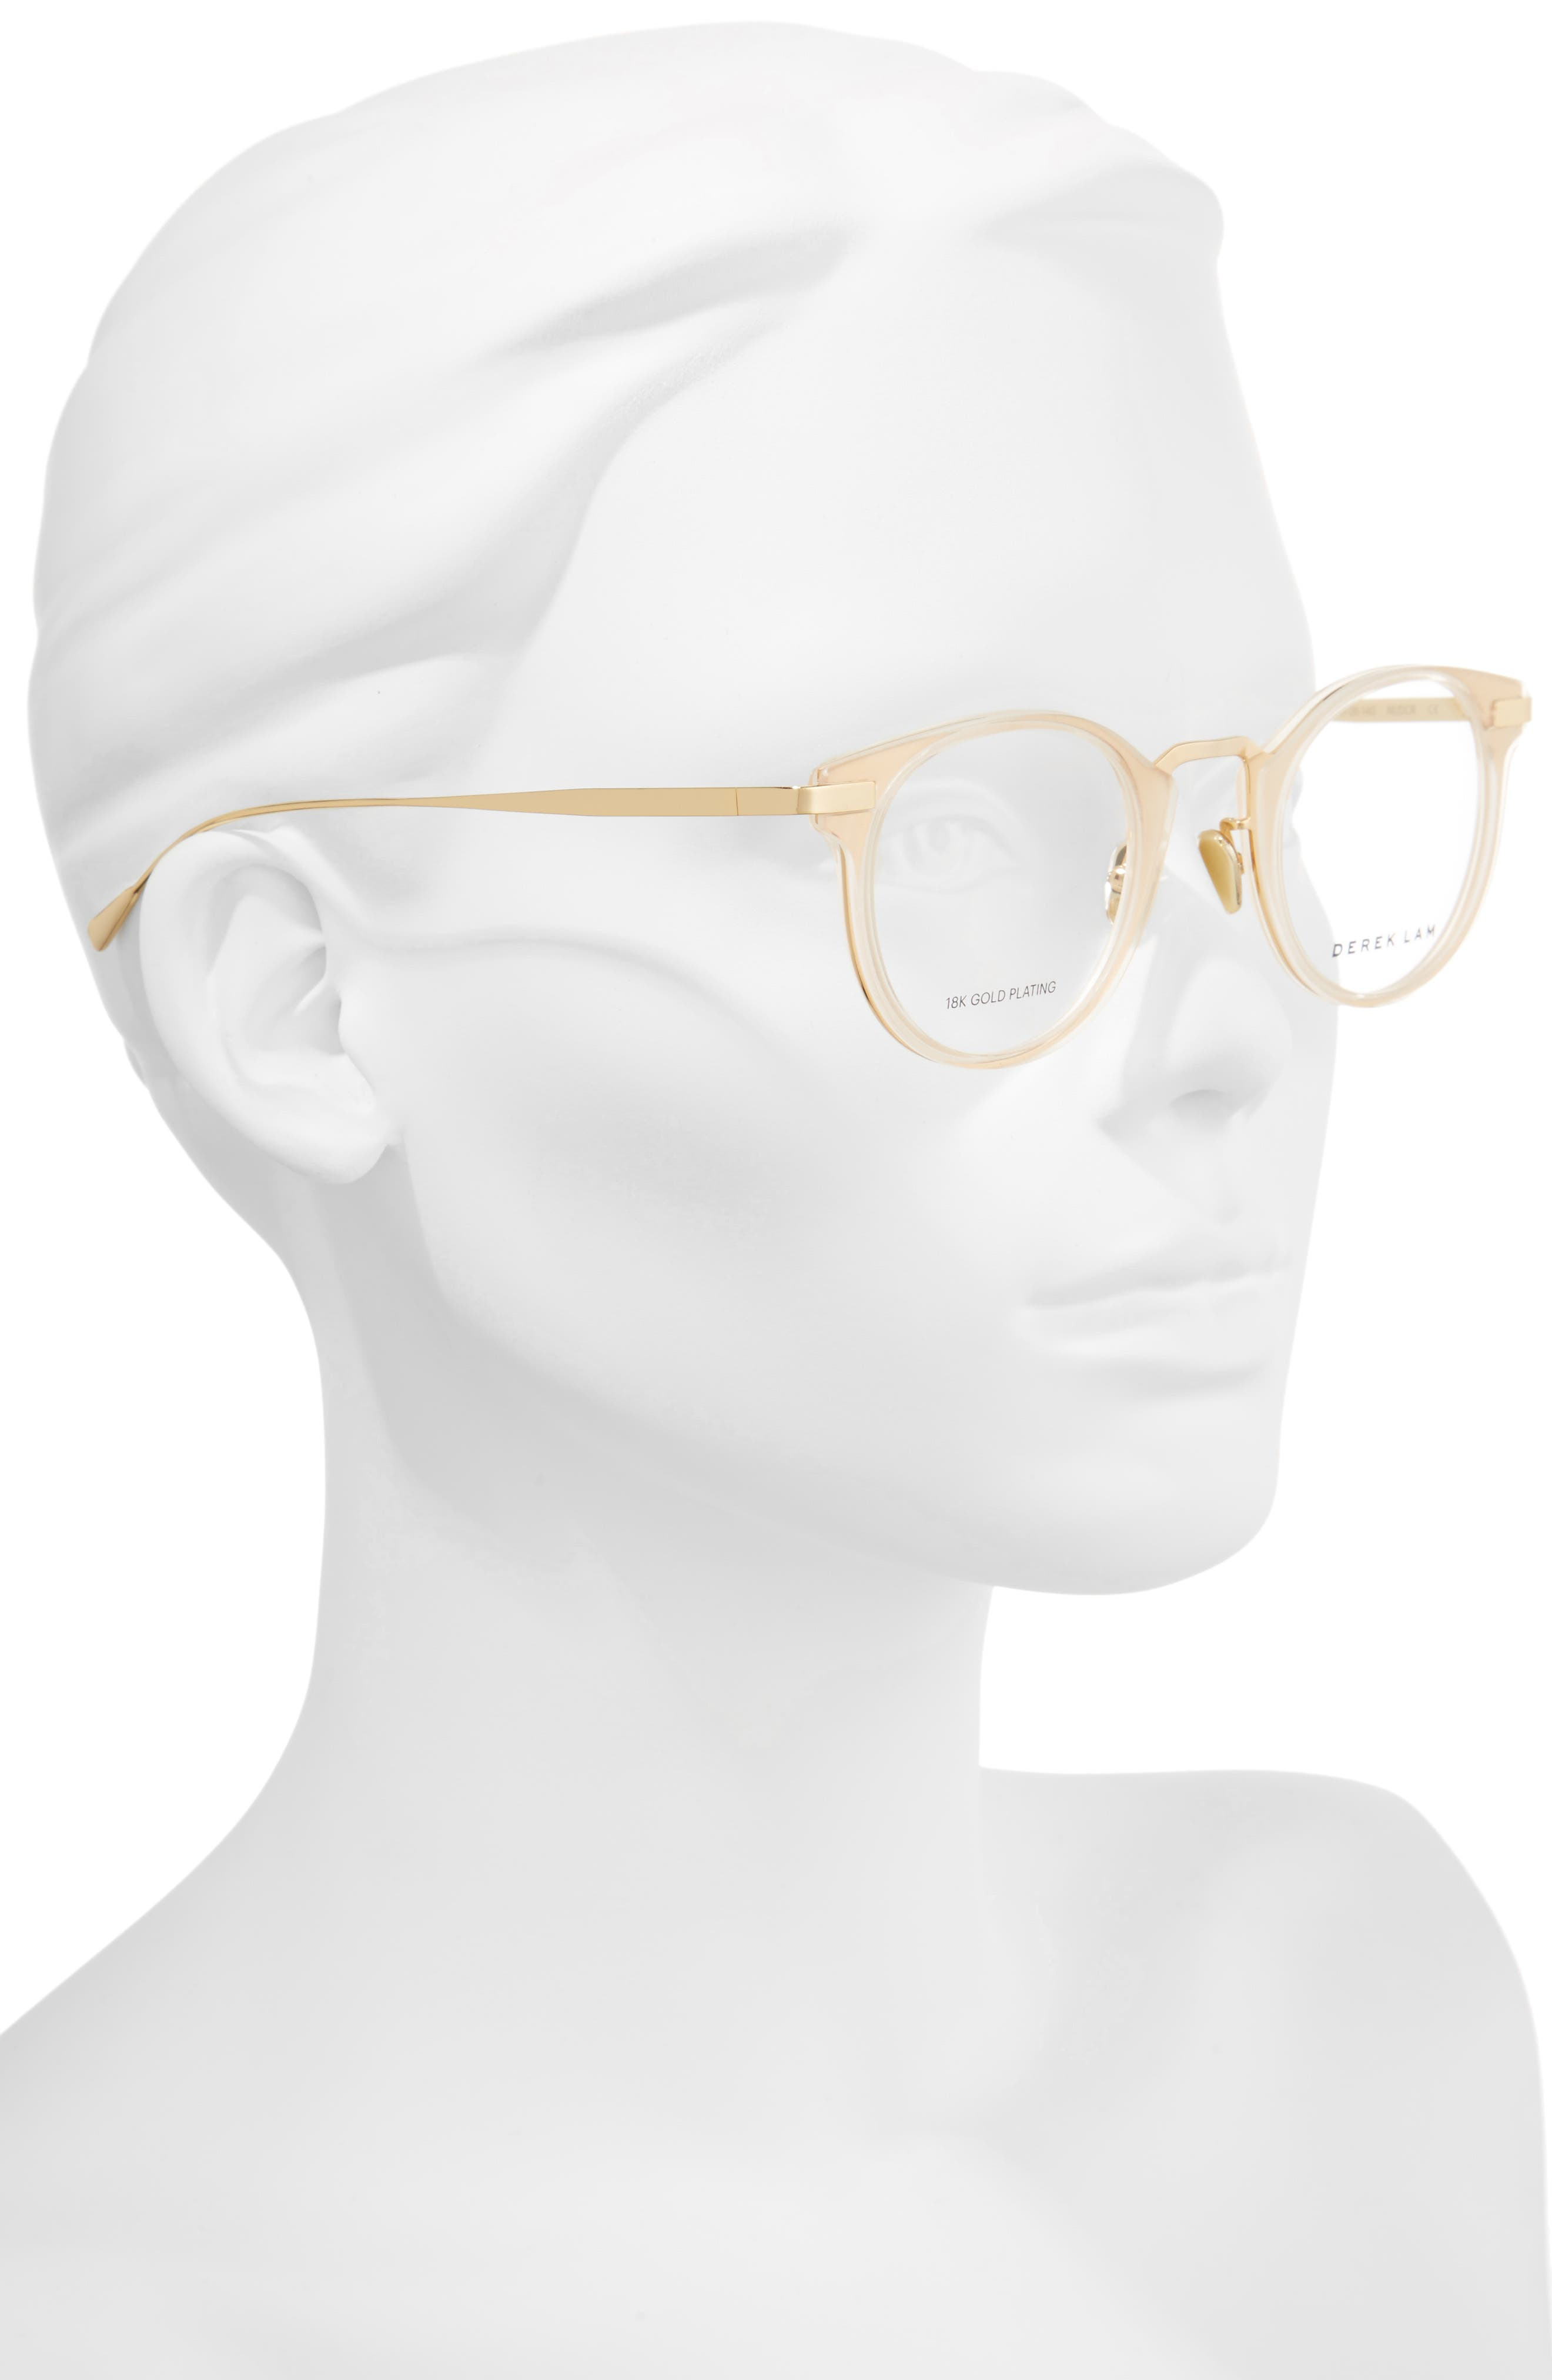 47mm Optical Glasses,                             Alternate thumbnail 2, color,                             NUDE CRYSTAL